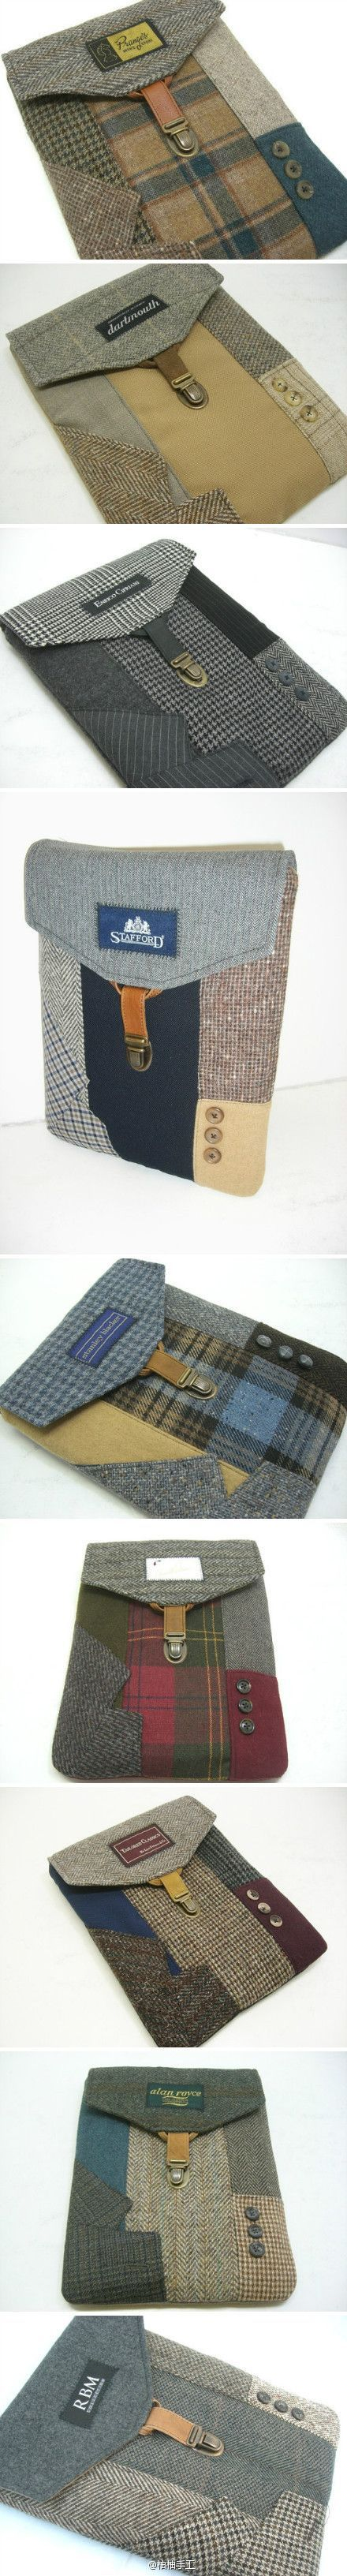 Purses from men's suits